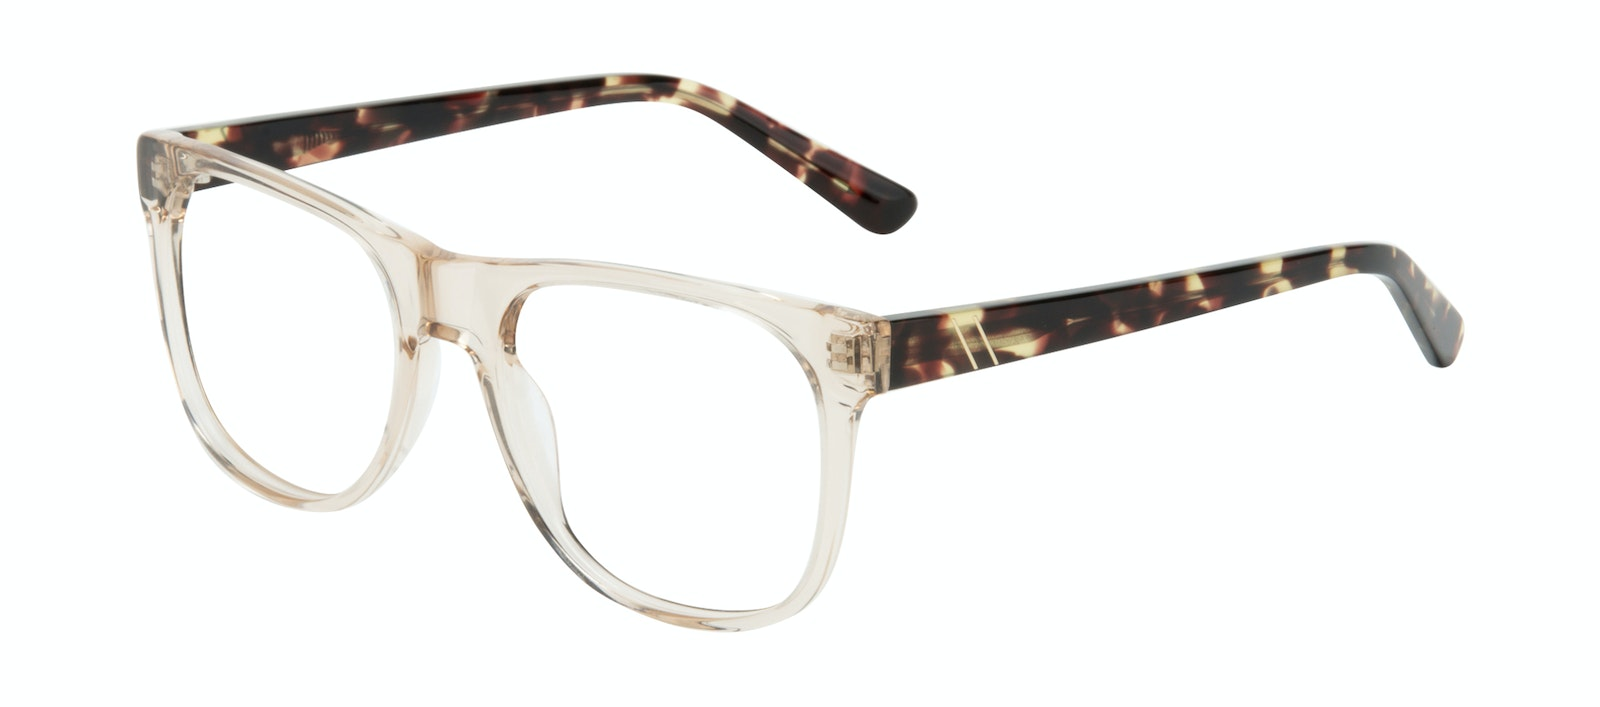 Affordable Fashion Glasses Square Eyeglasses Men Make Golden Tort Tilt